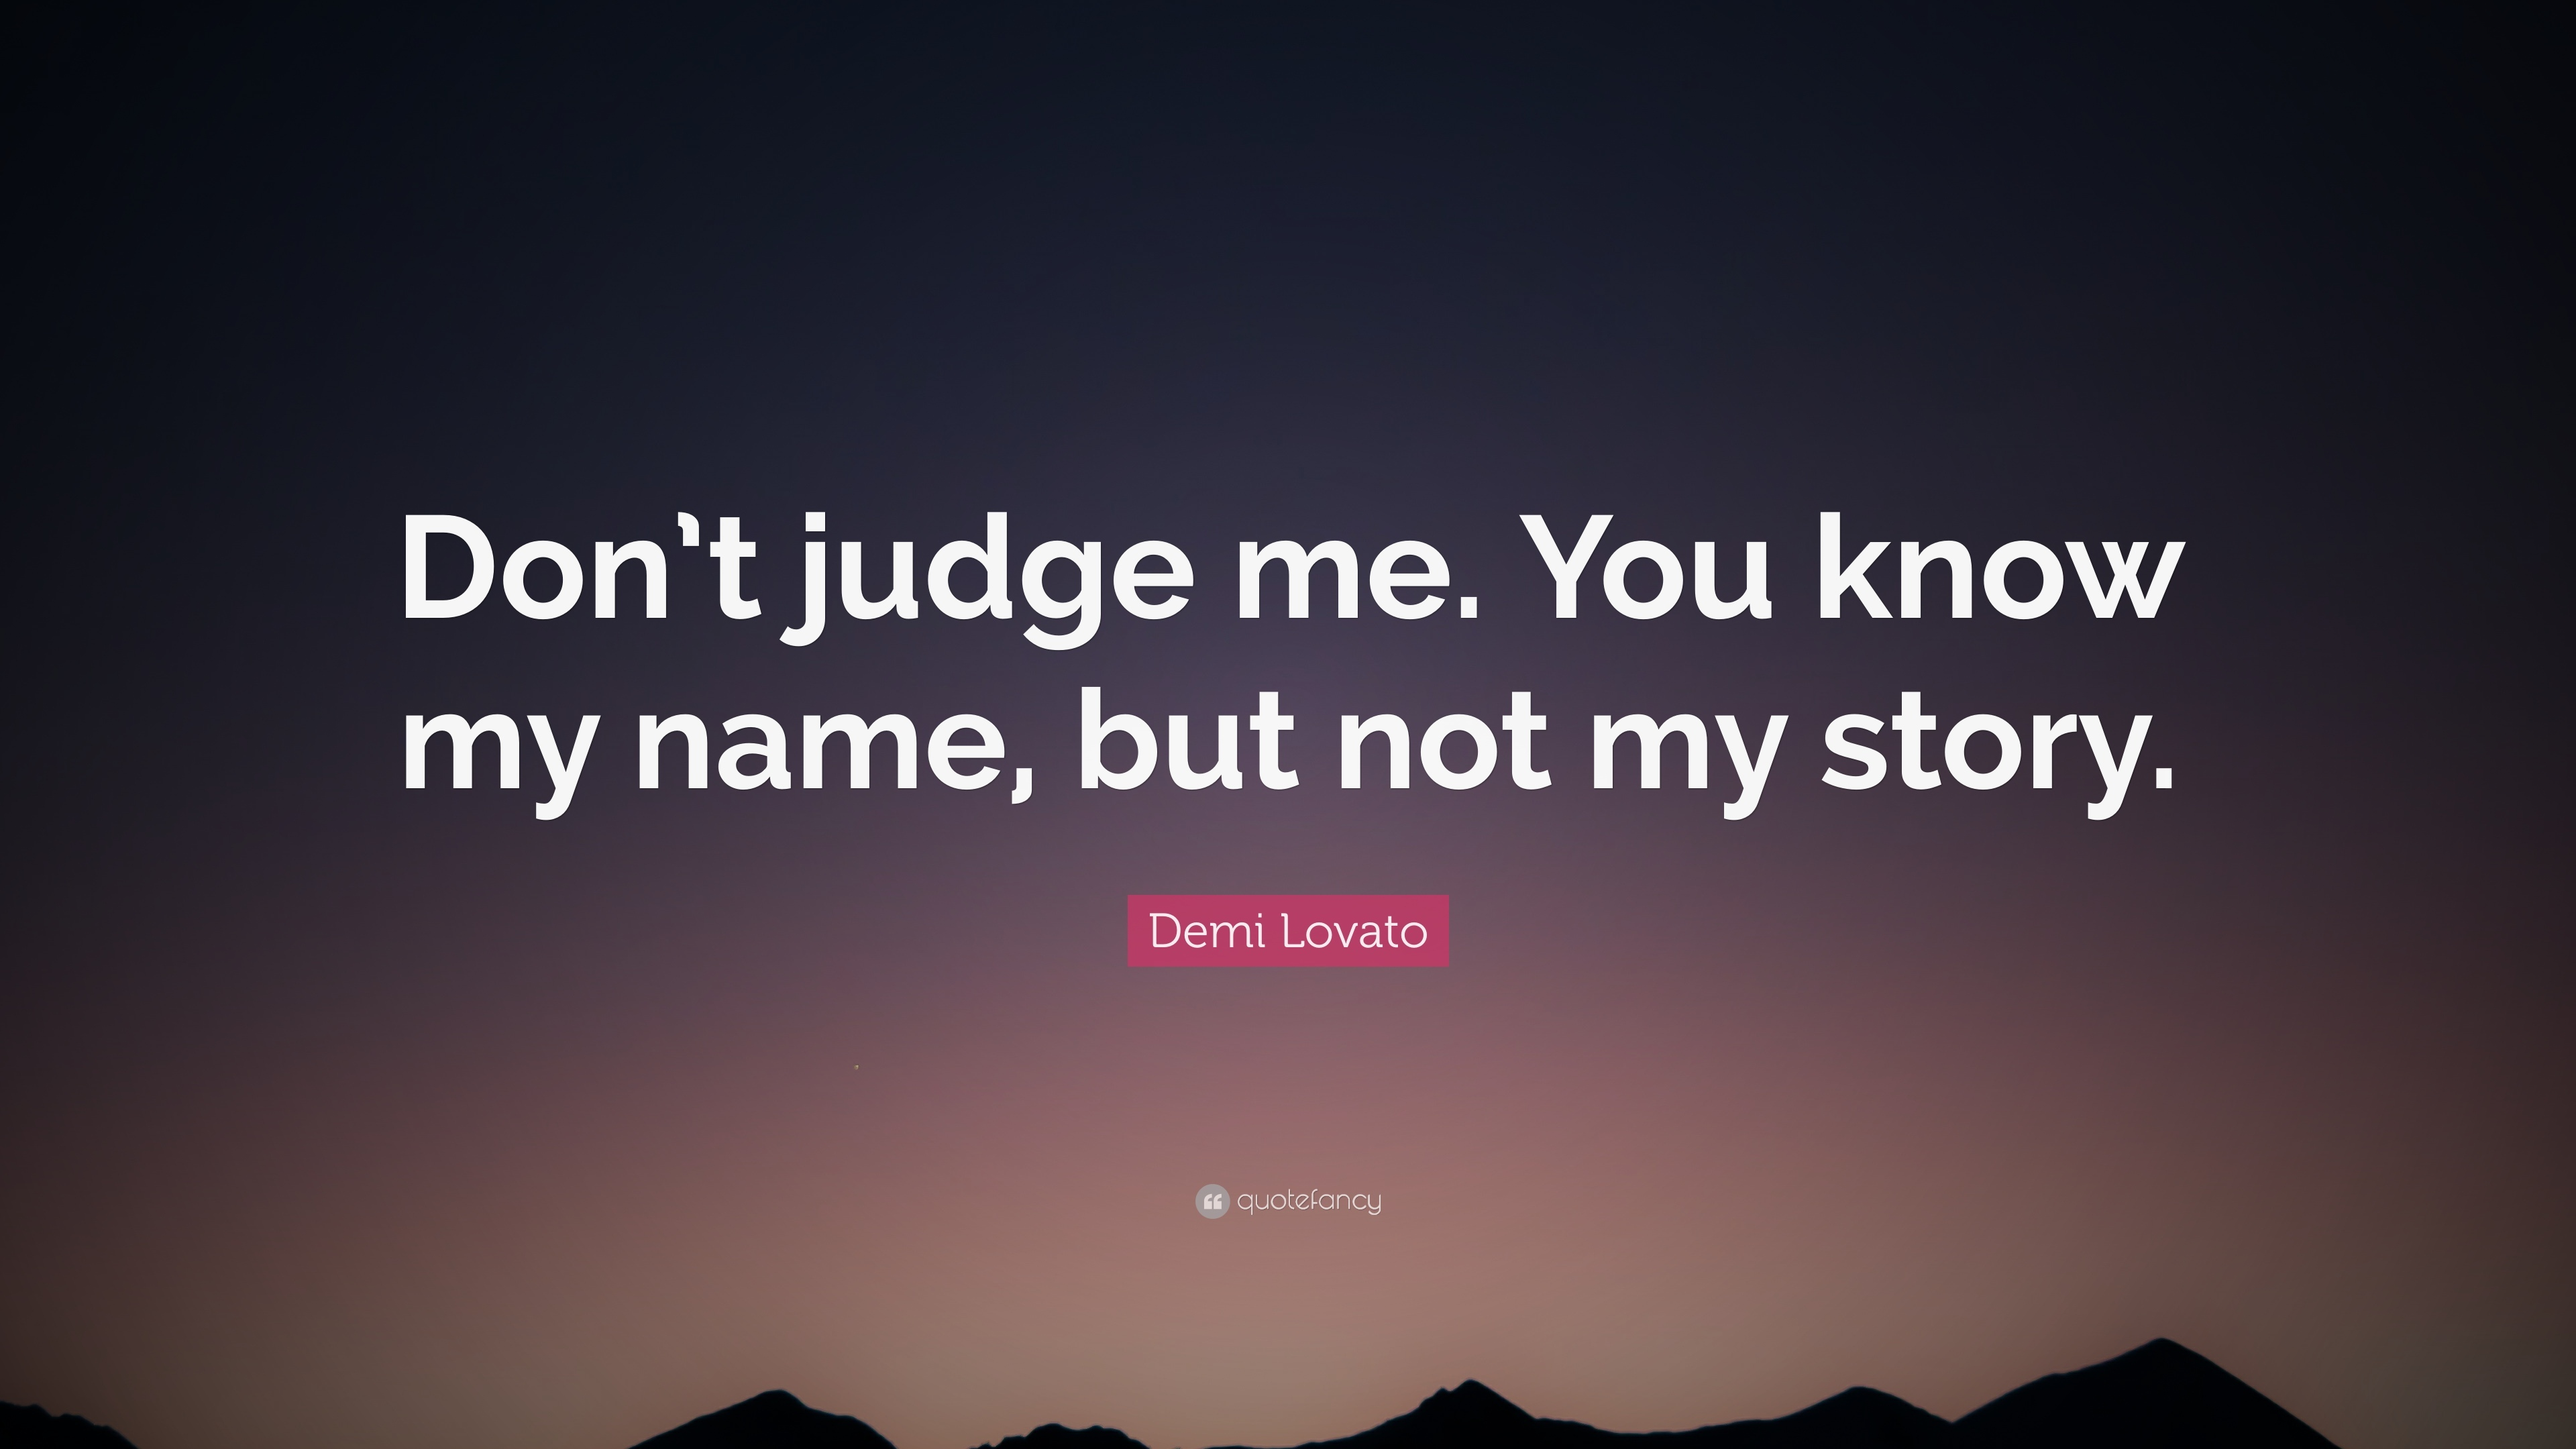 Don't judge others, Work on yourself